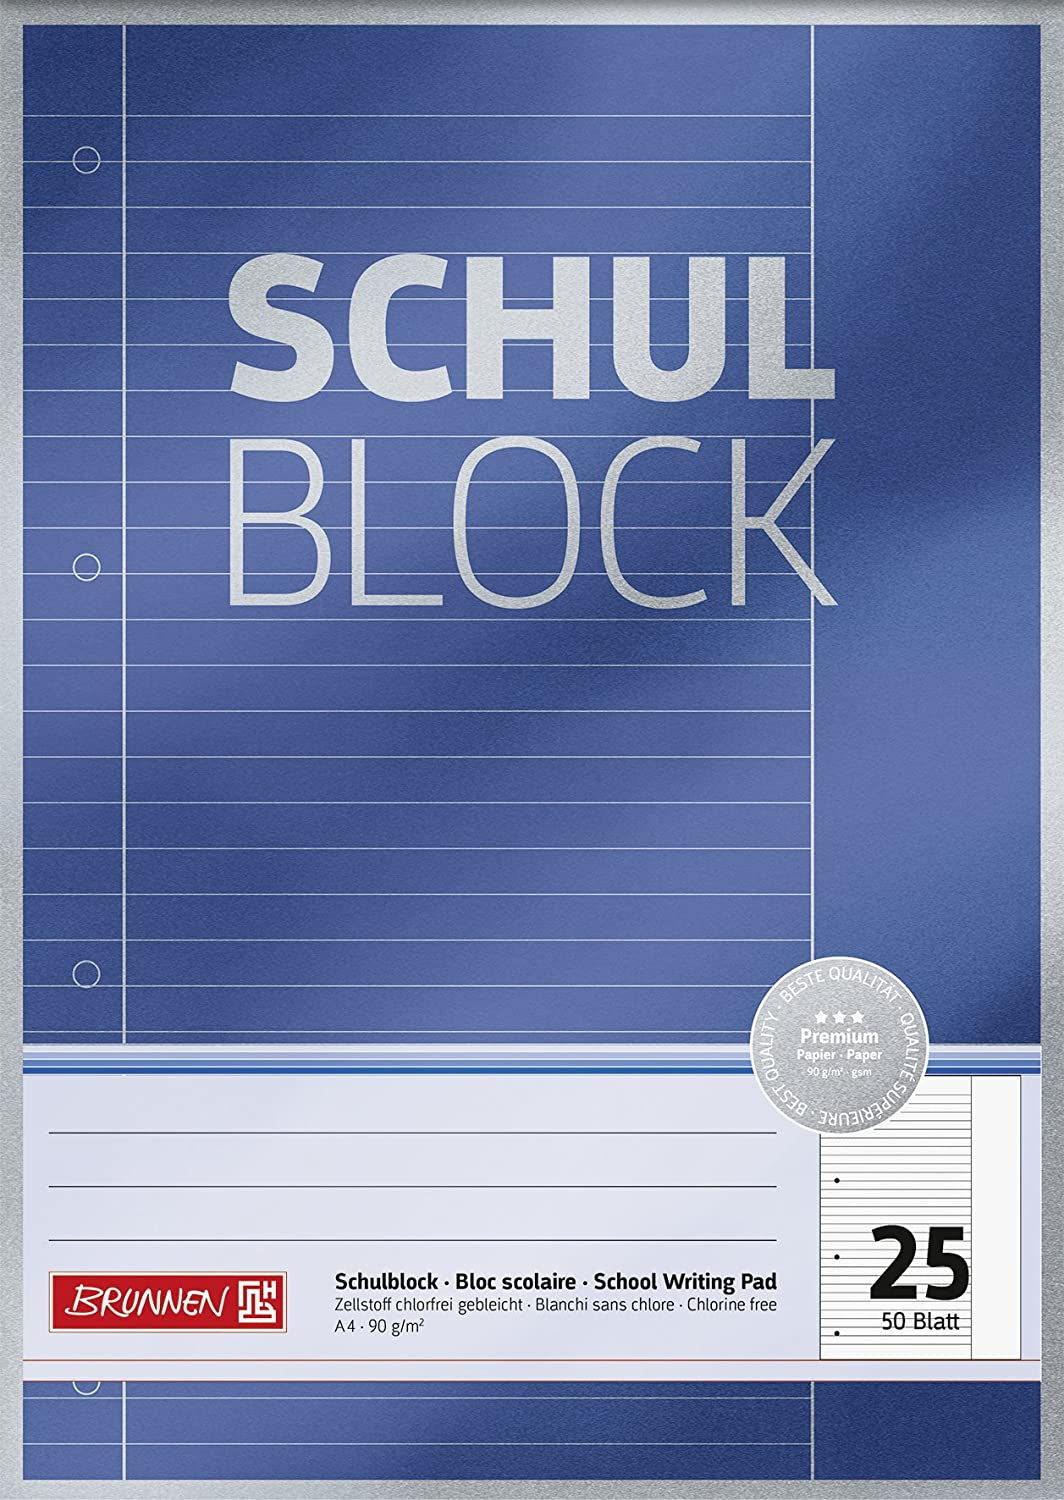 Brunnen 1052625 Premium School Notepad A4, 50 Sheets, Lined, Margin, Ruling 25, Punched and Glued at Head, 90 g//m/²